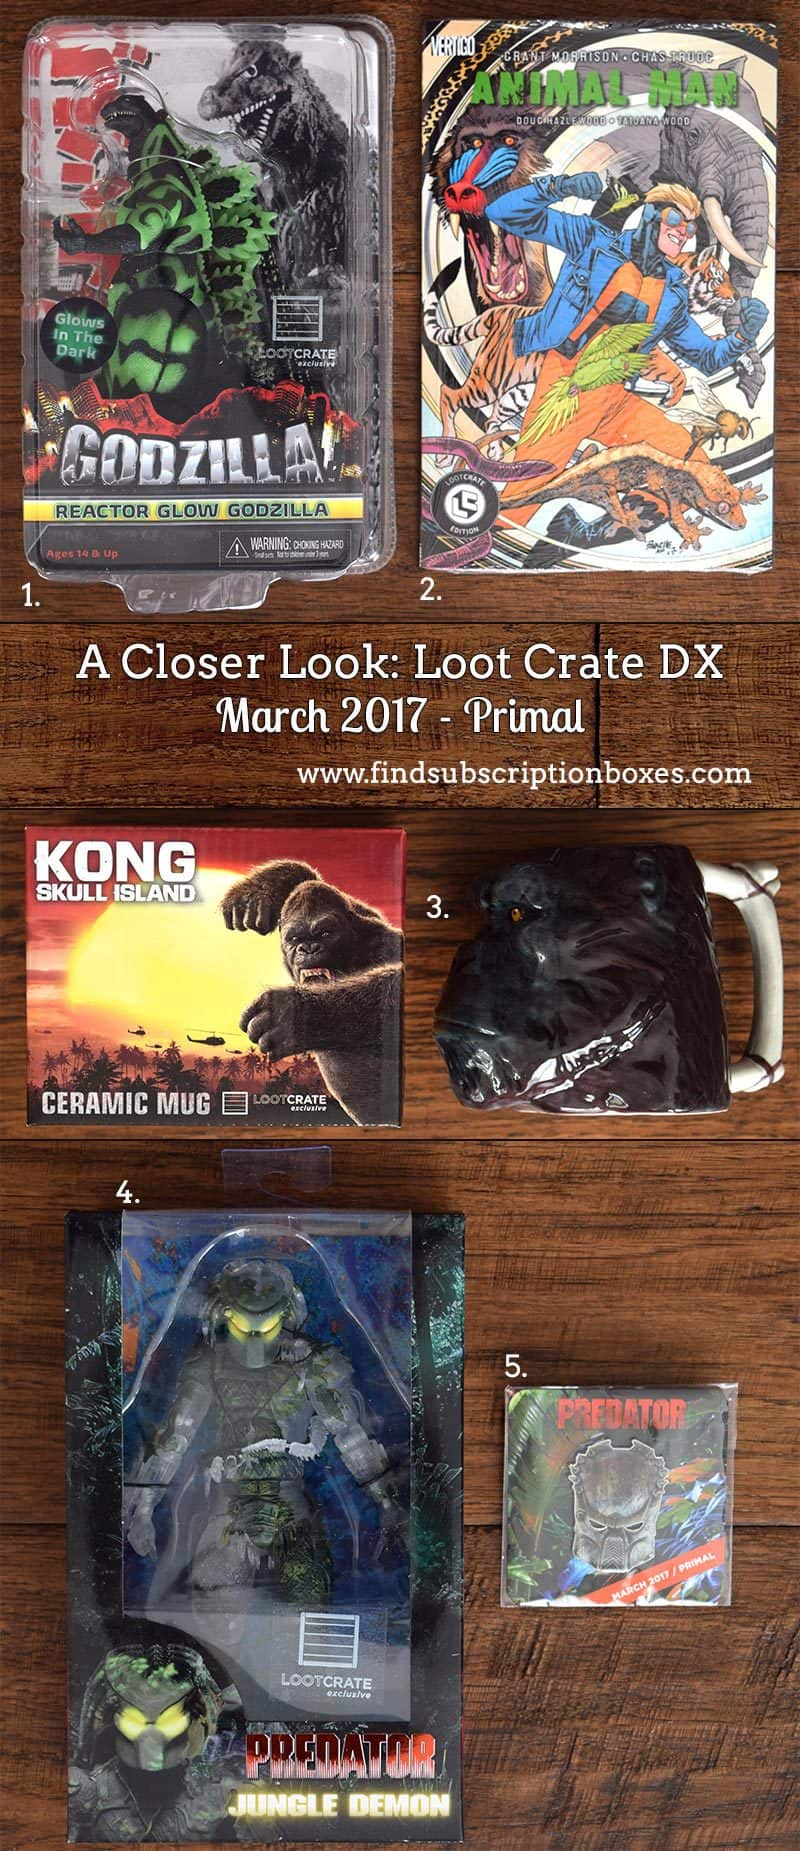 March 2017 Loot Crate DX Review - Primal - Inside the Box